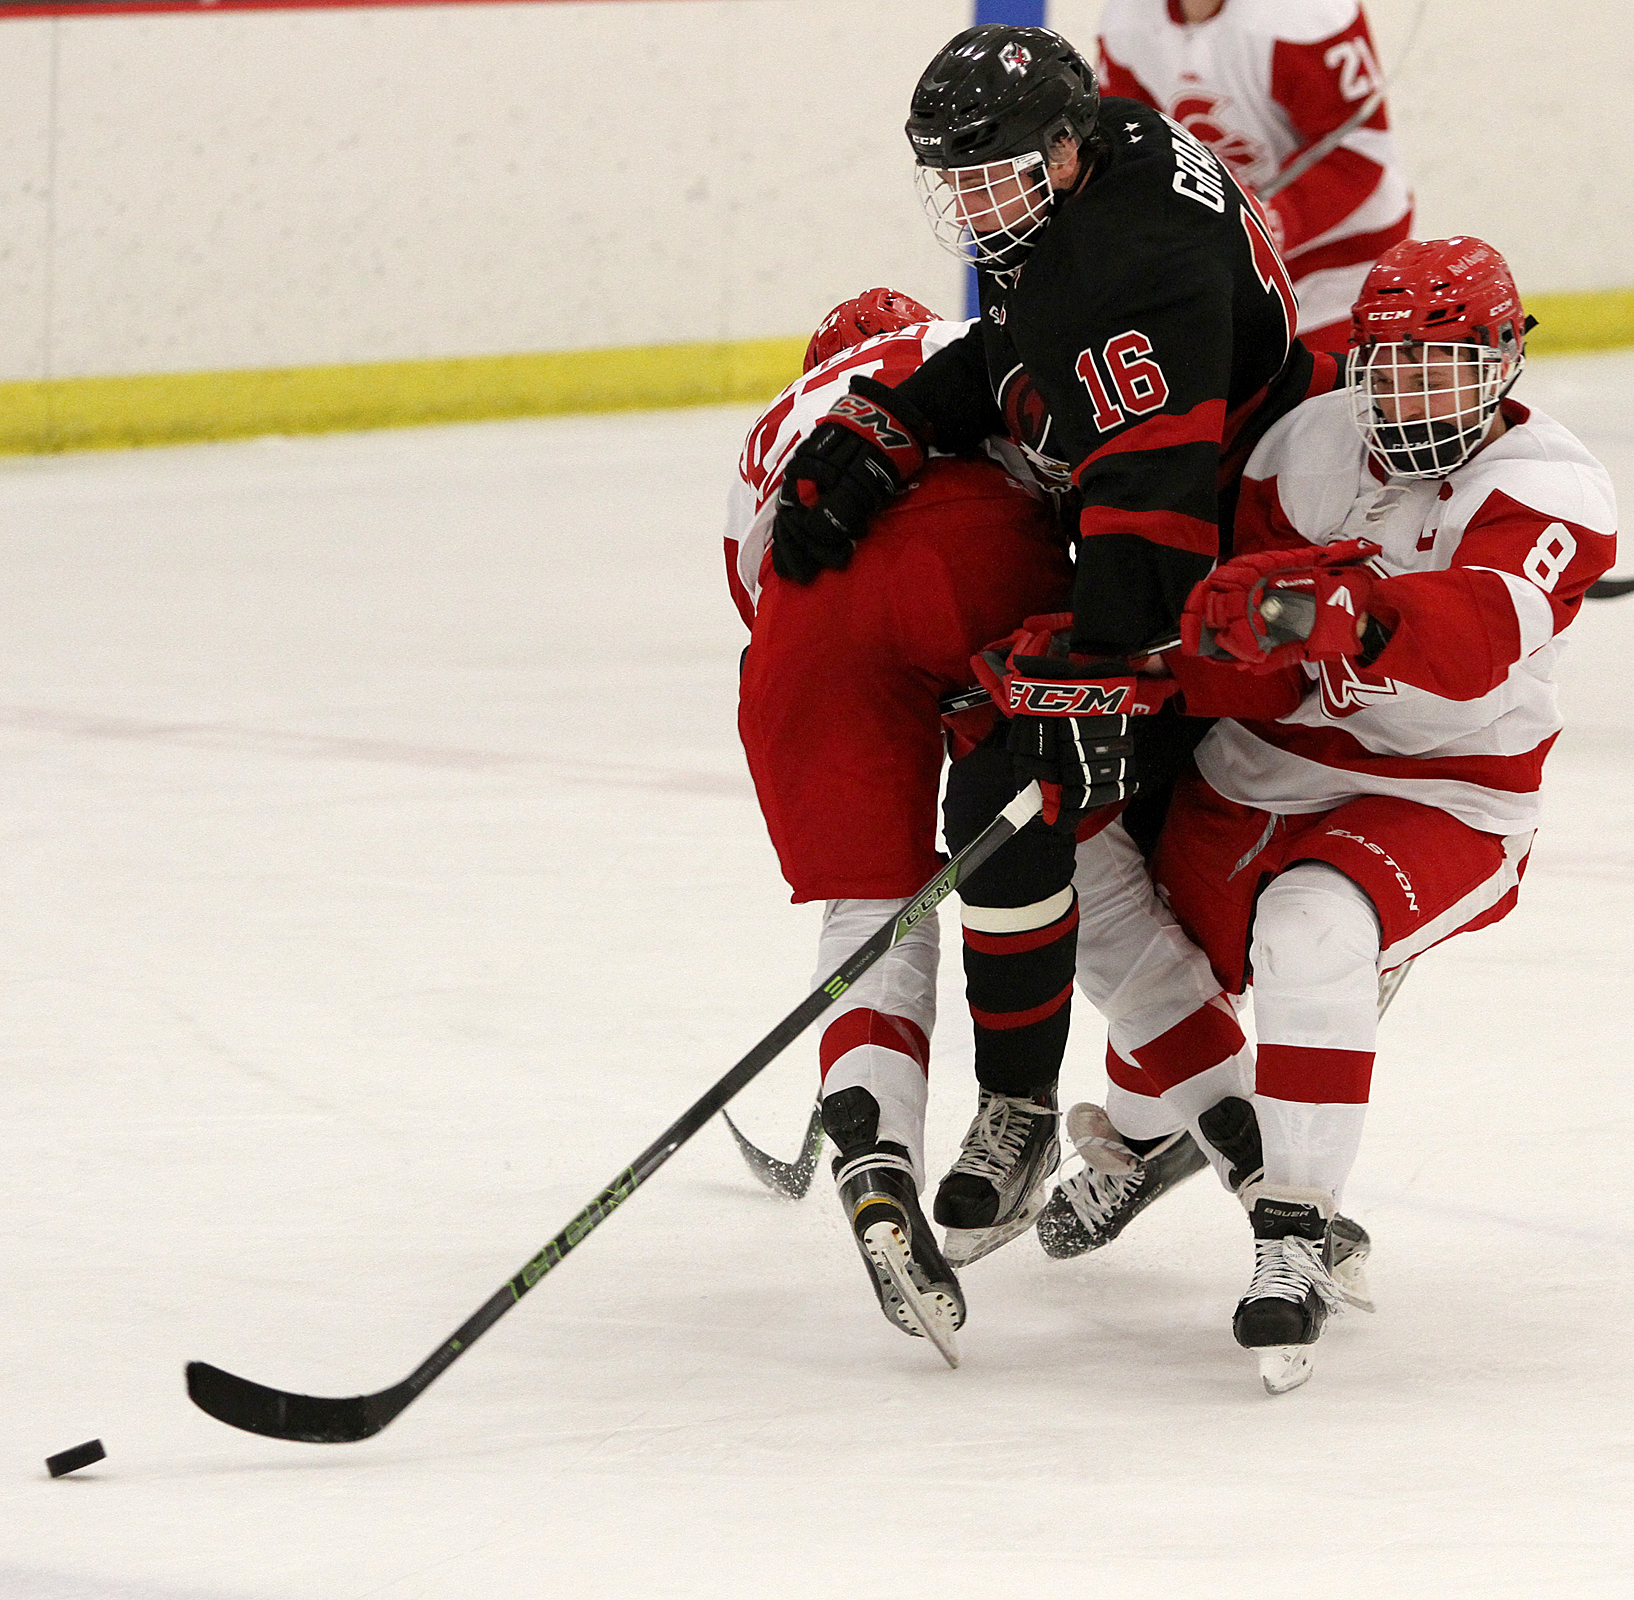 Eden Prairie senior Michael Graham is sandwiched by a pair of Benilde-St. Margaret skaters in the second period. Photo by Drew Herron